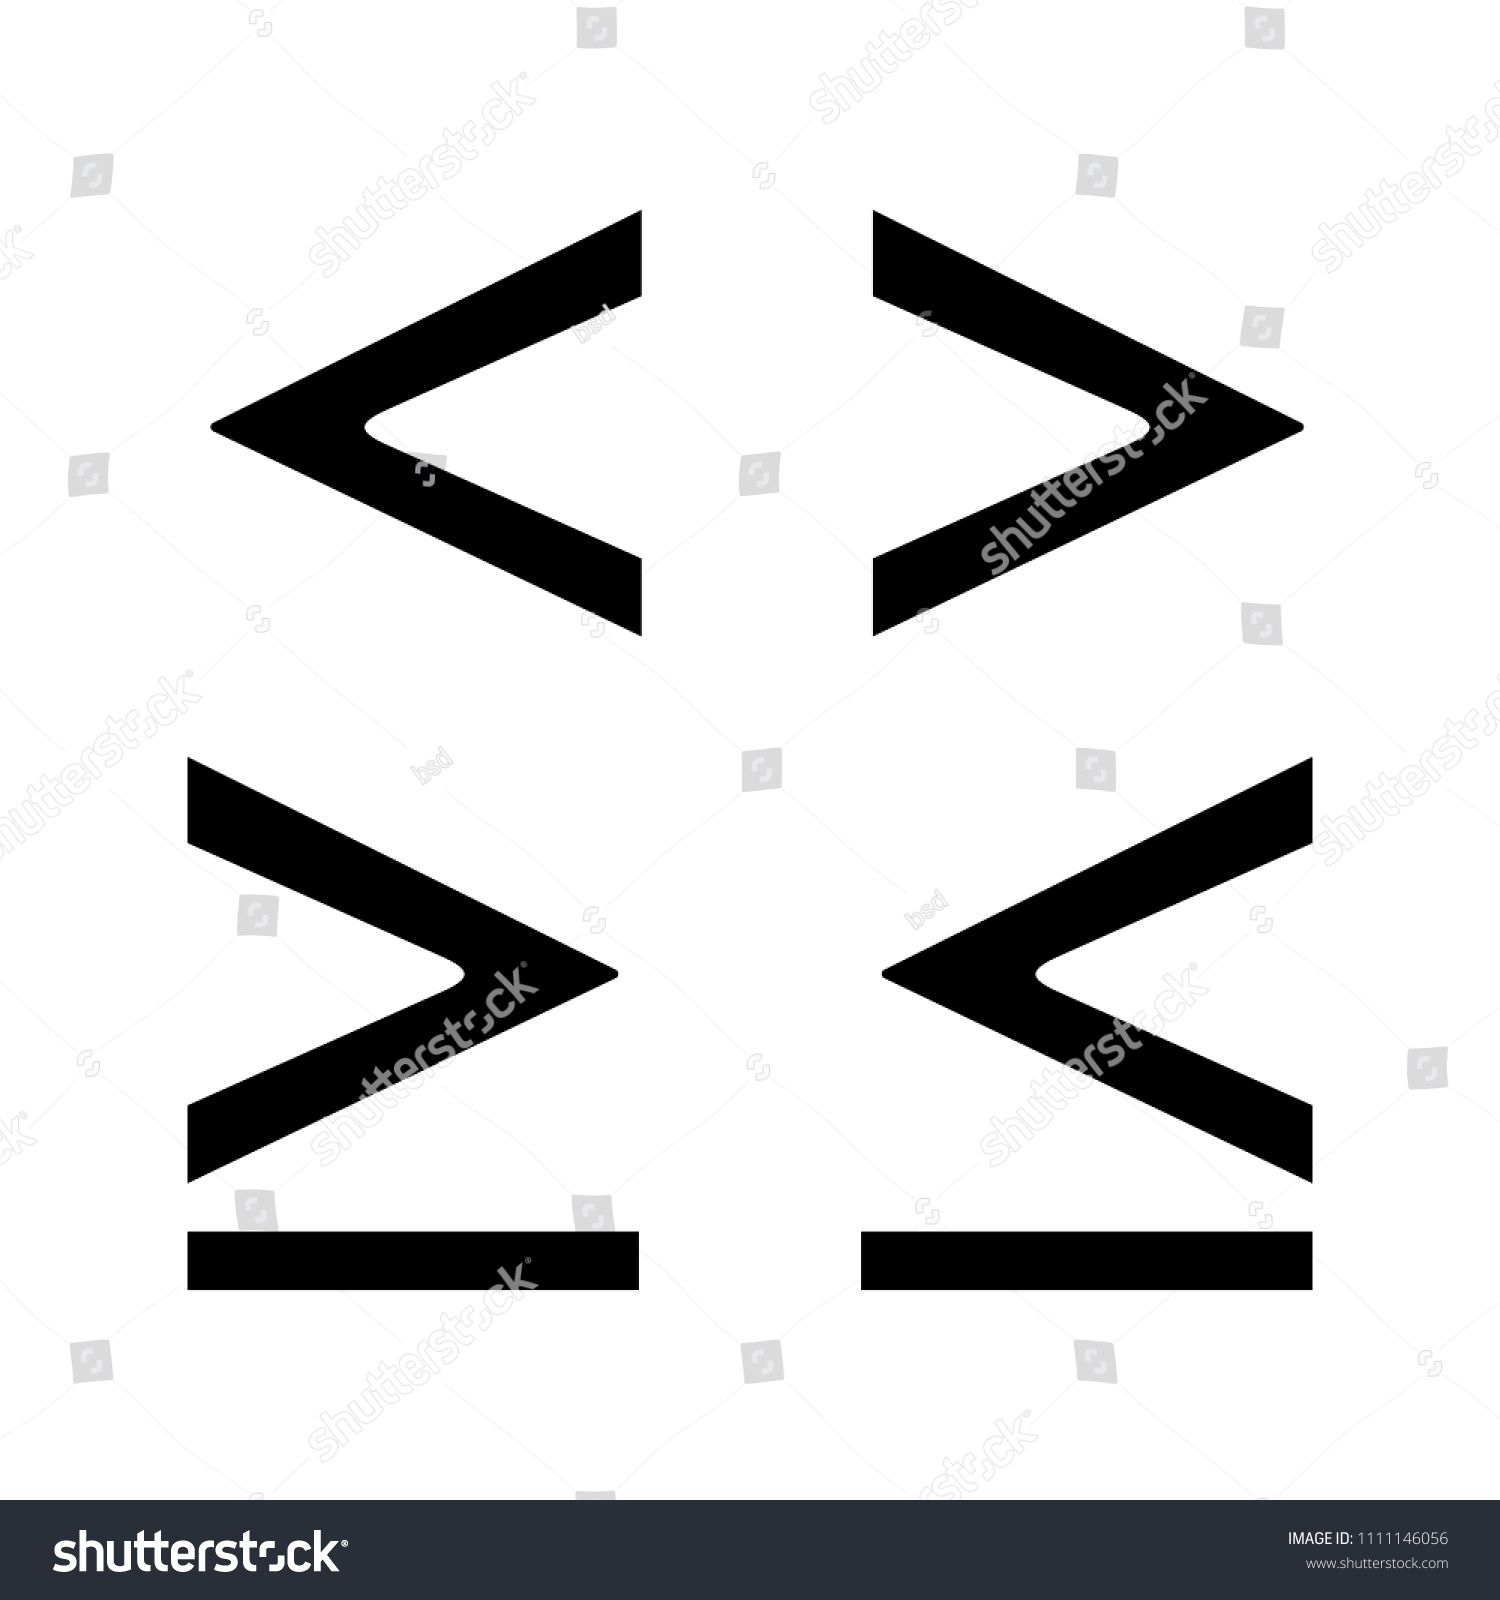 Math Symbols Glyph Icon Is Less Greater Or Equal Than Signs Silhouette Symbol Negative Space Vector Isolated Illustration Spons Glyph Icon Glyphs Symbols